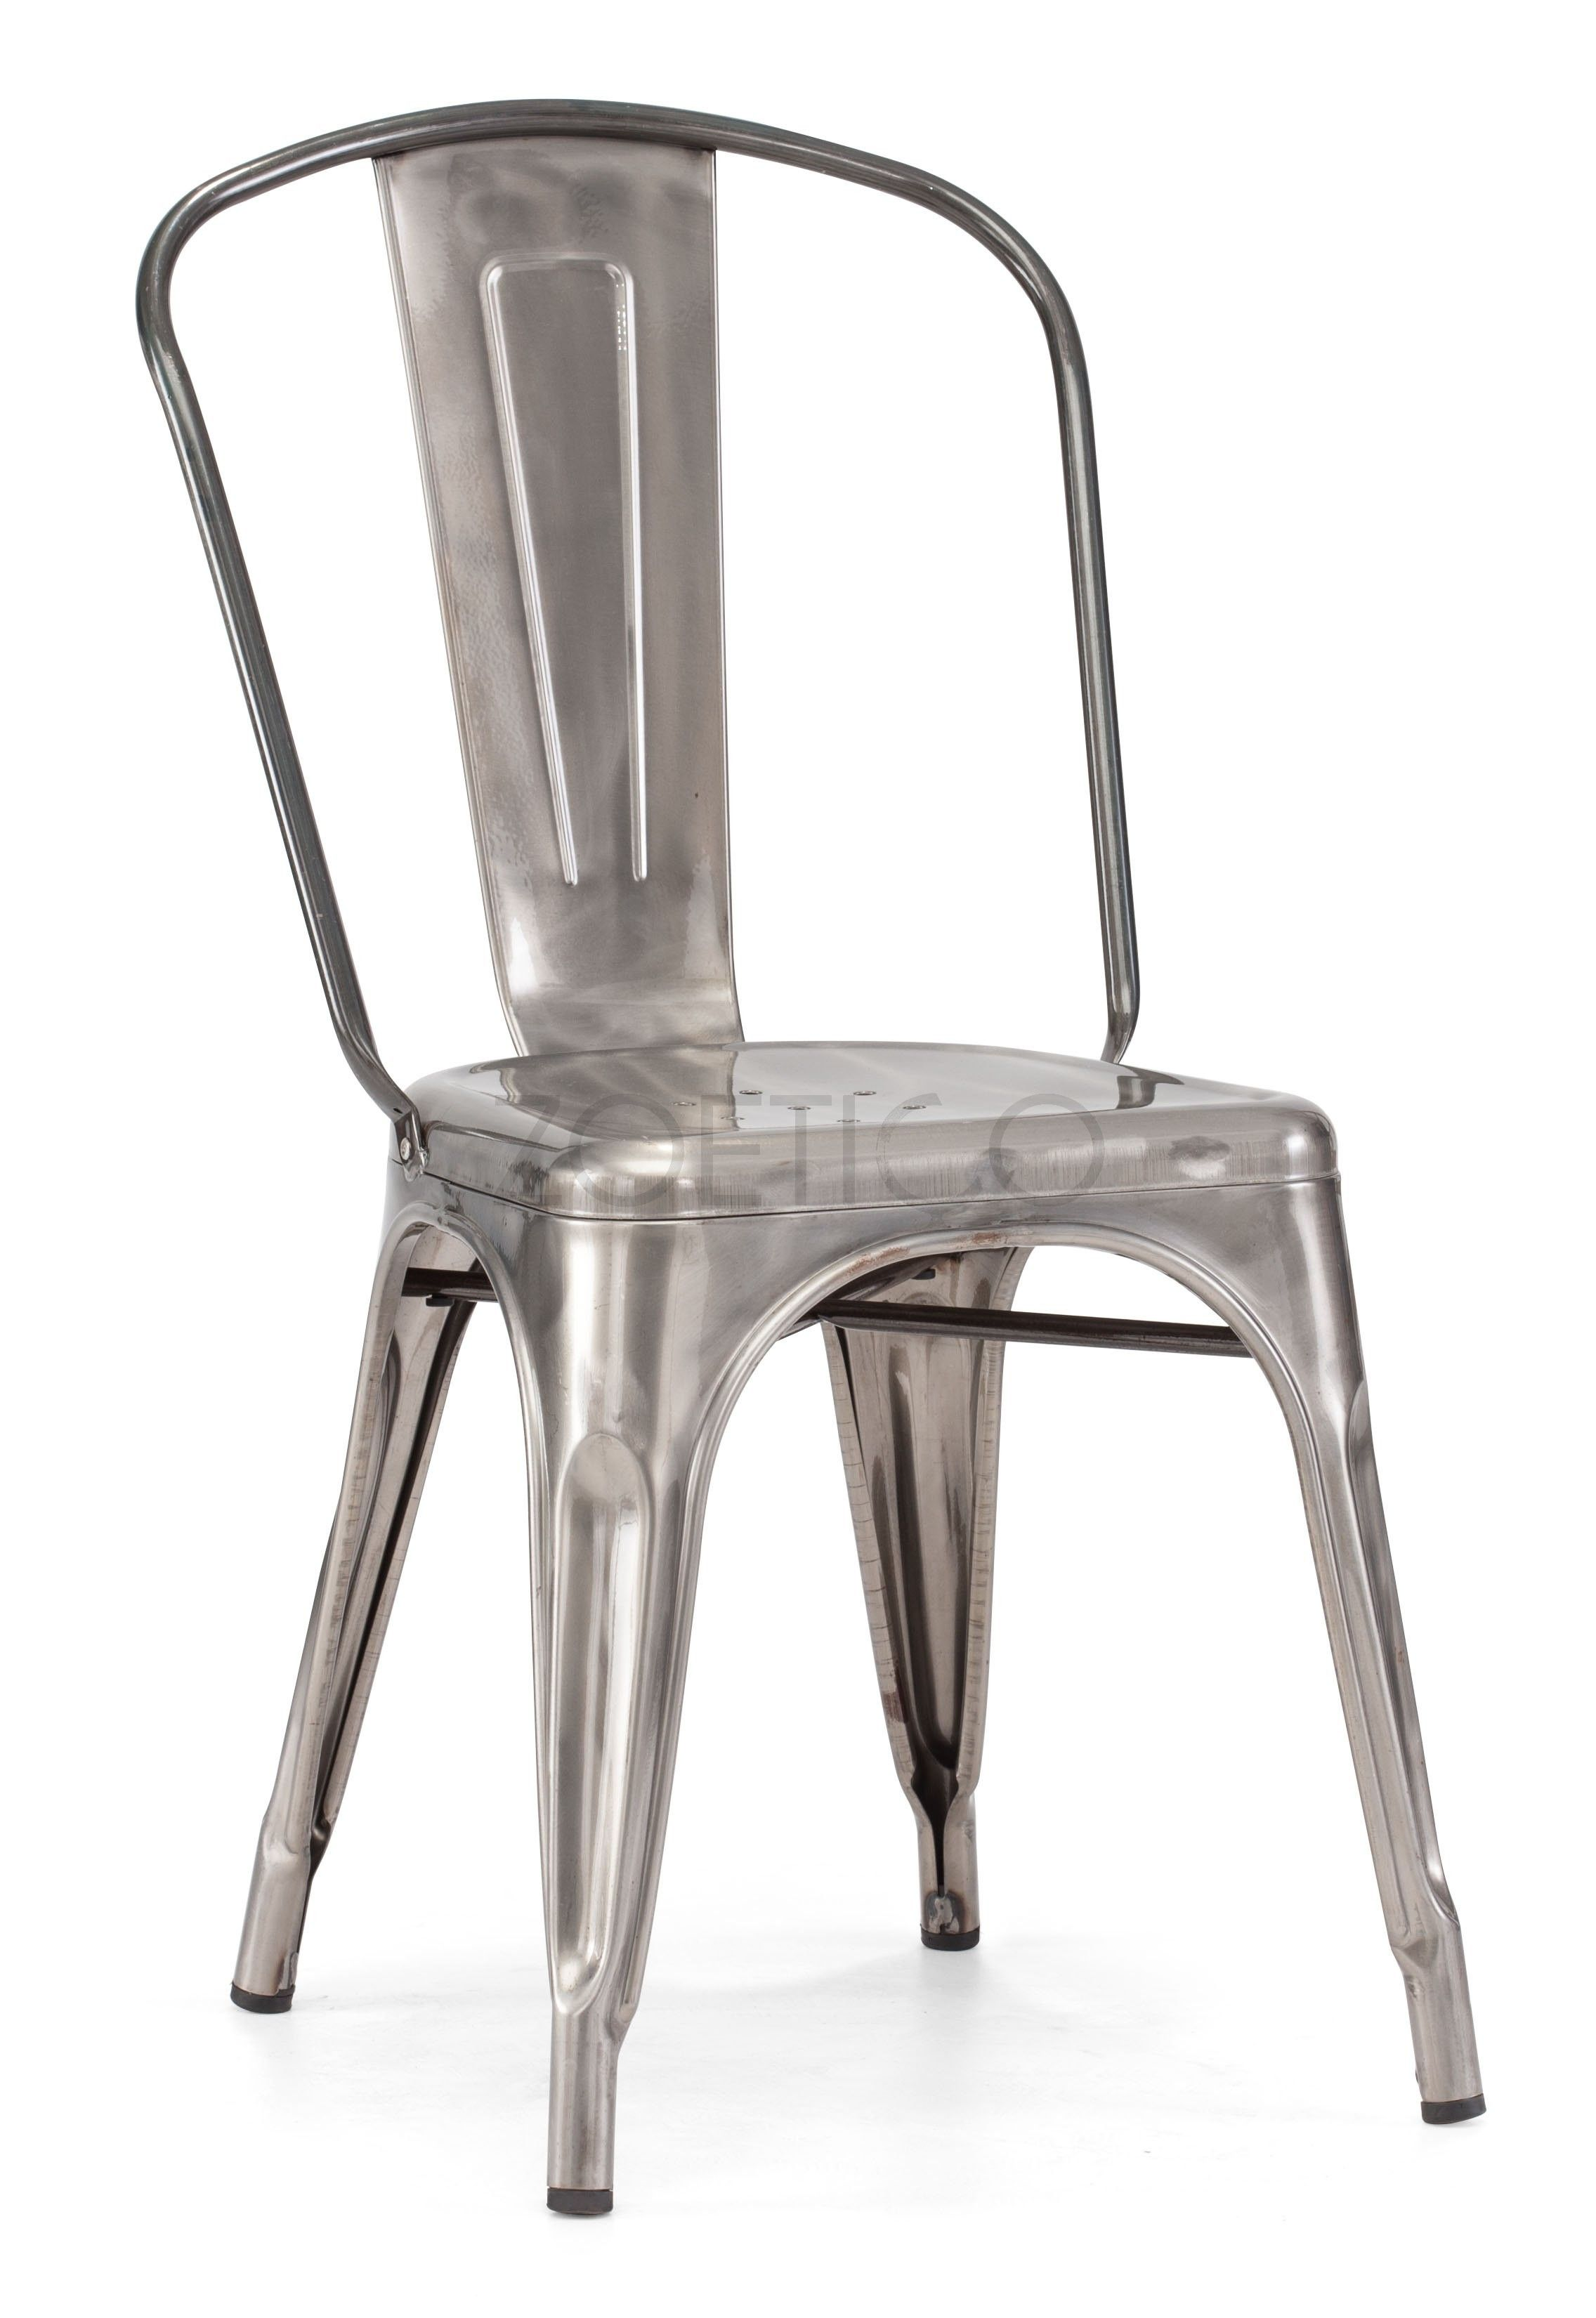 Metal Dining Chairs Ikea Stool Chair With Armrest Furniture Google Search Fahrenheit 451 Pinterest Coffee Shop Home